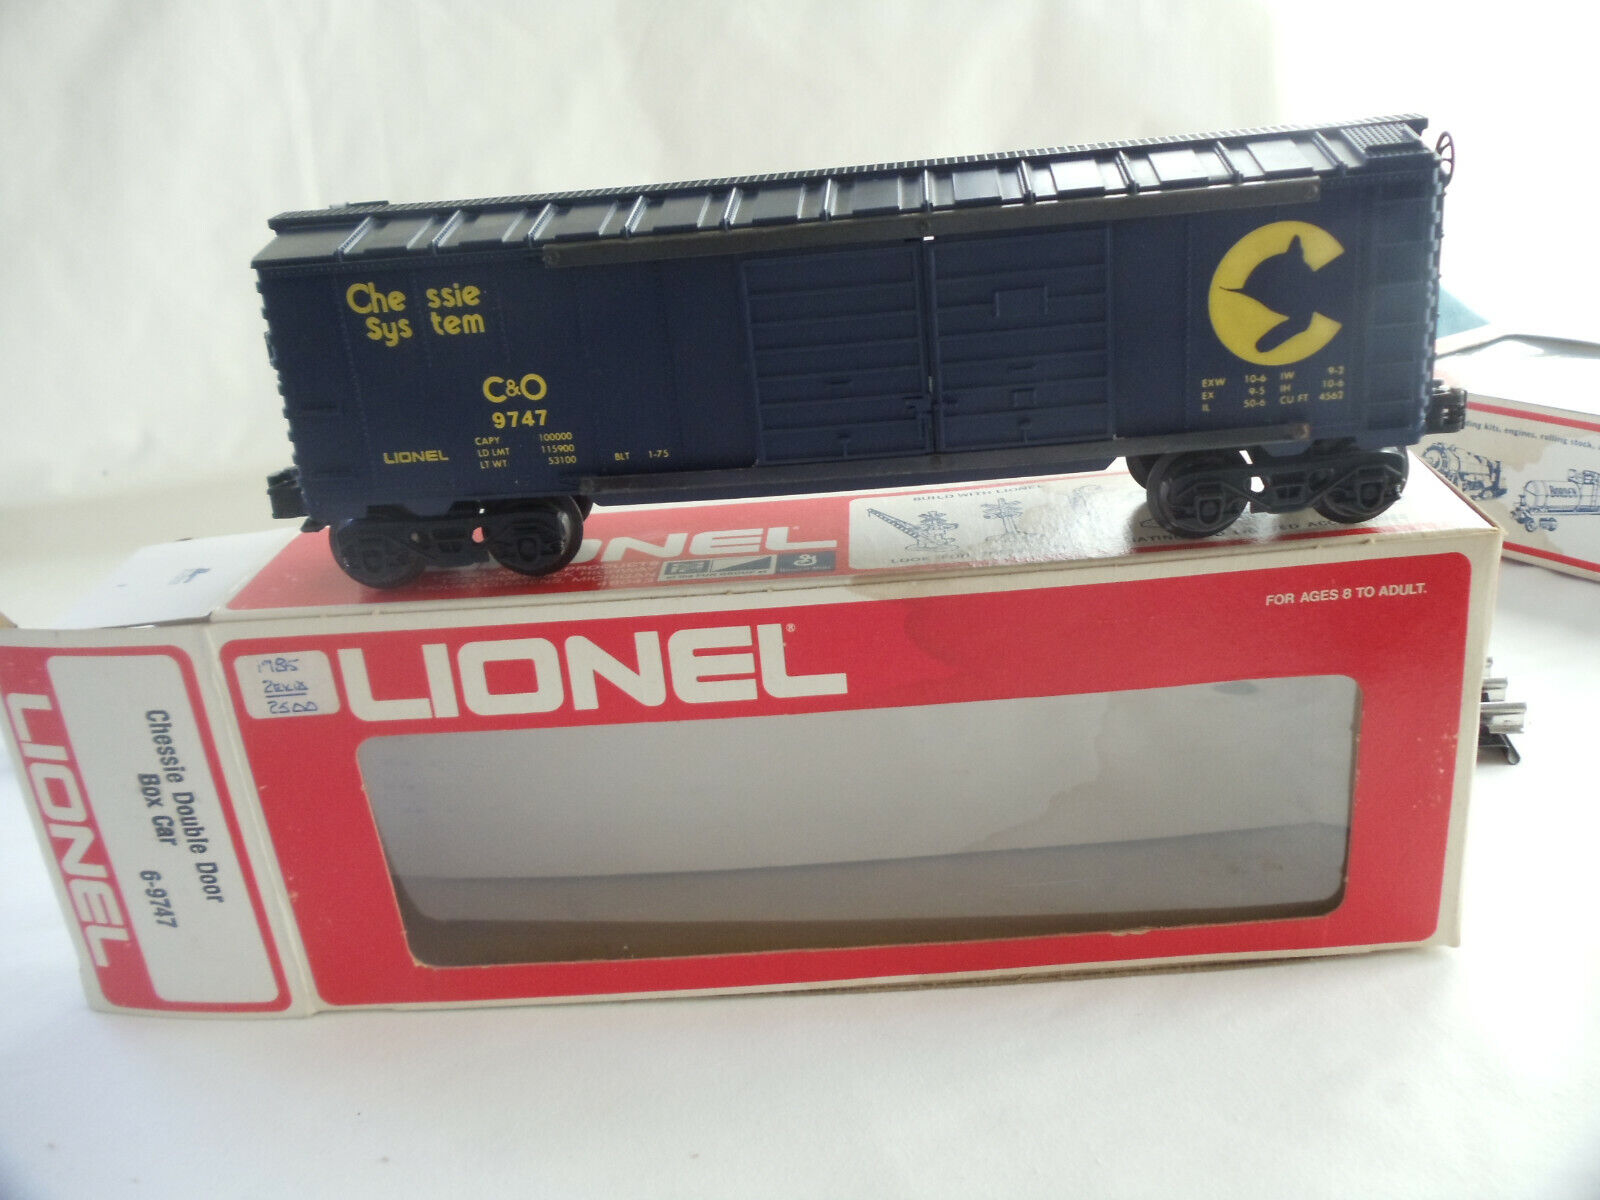 LIONEL-CHESSIE SYSTEM Double Door BOXCAR USED - $12.00